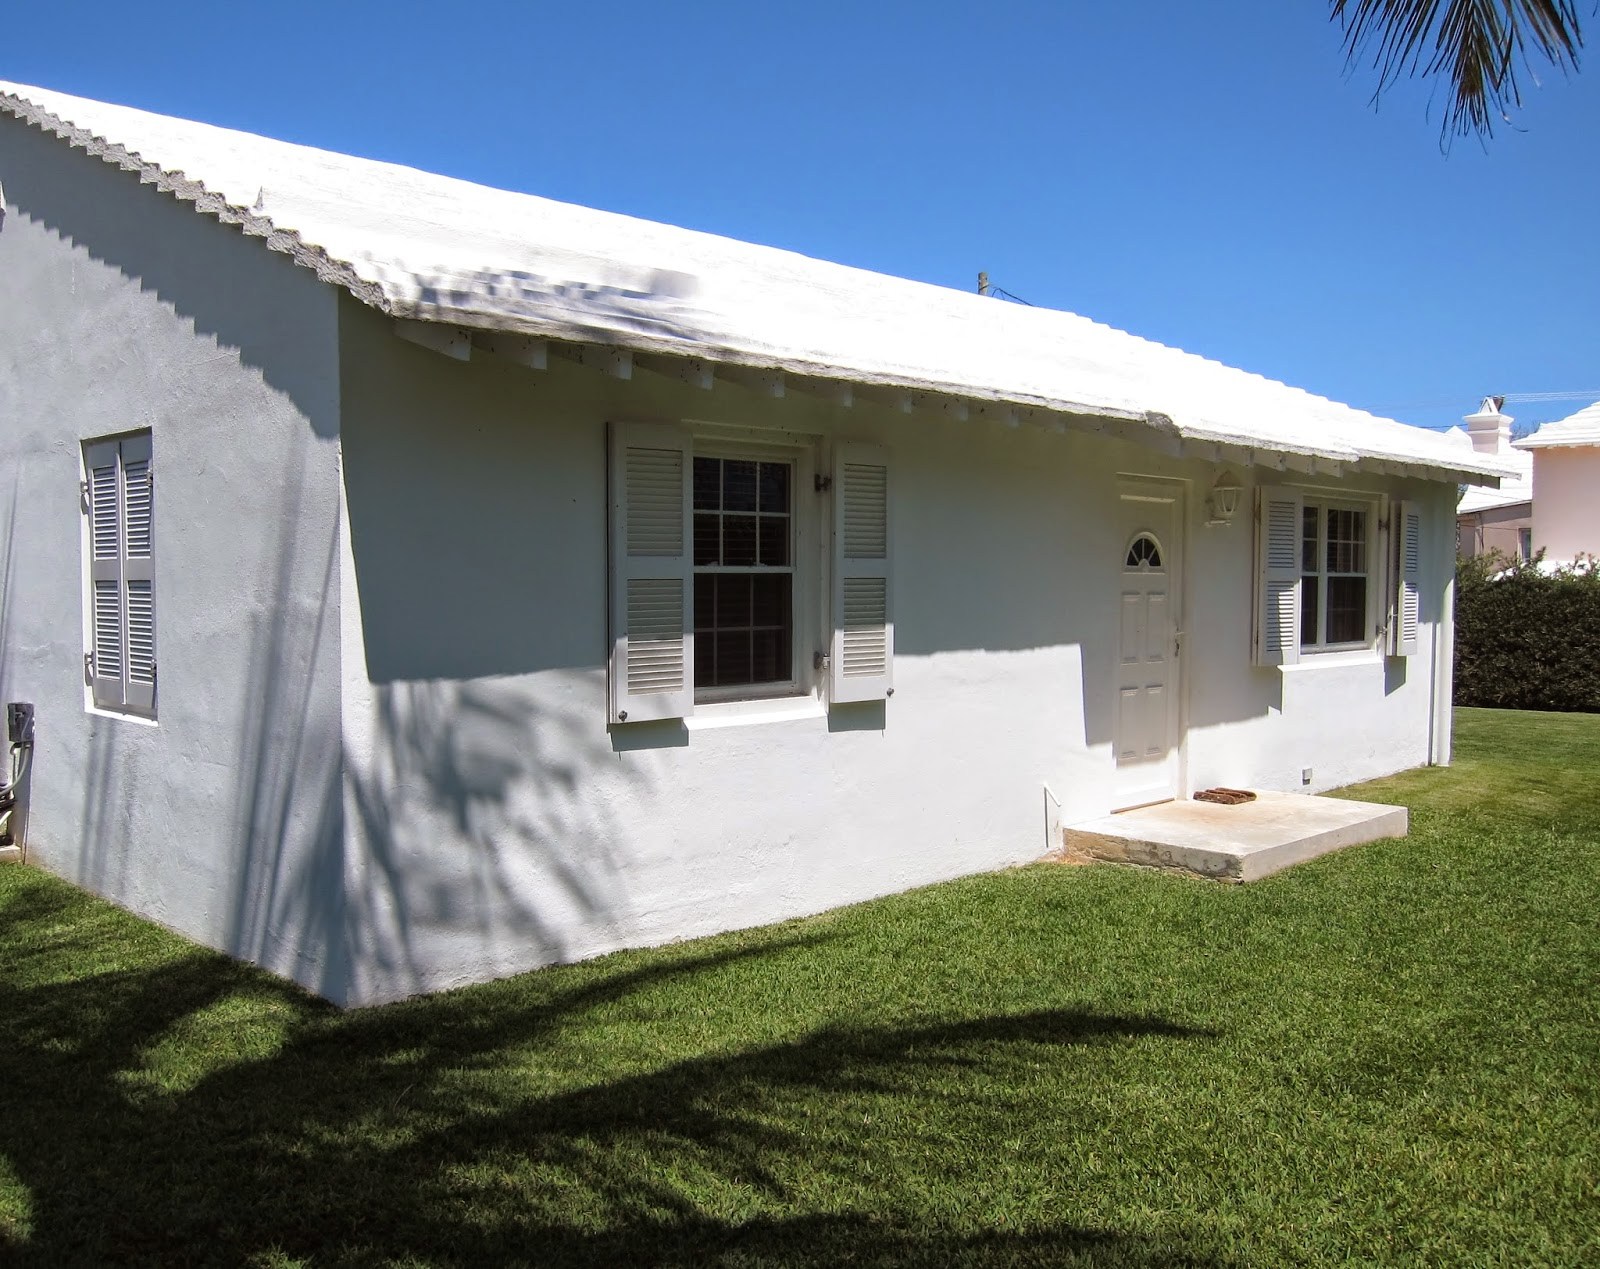 Bermuda Home On The Rock Perfect Bermuda Cottage 595 000